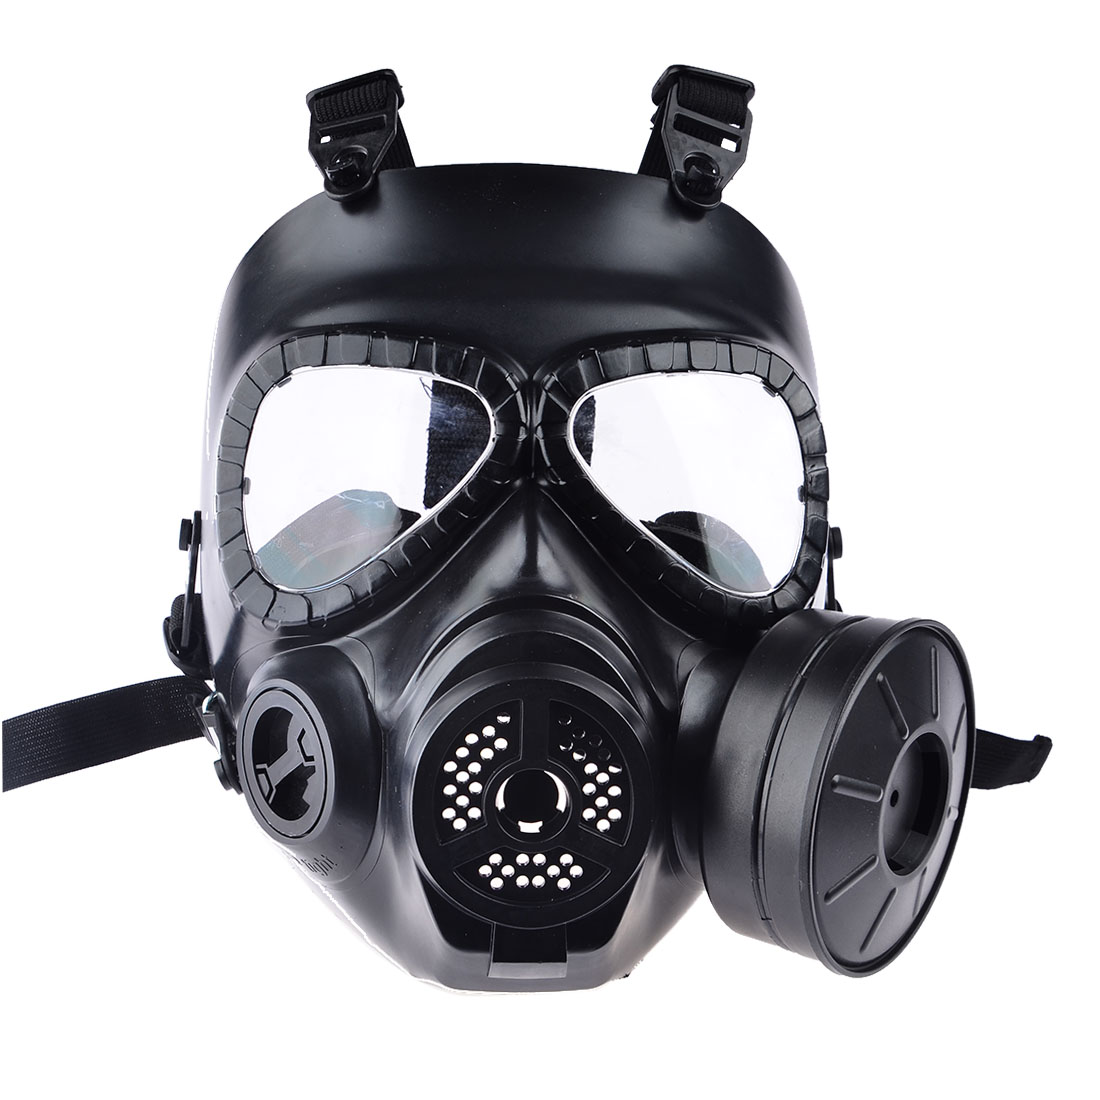 Airsoft Paintball Dummy Gas Mask With Fan For Outdoor Wargame Cosplay Protection Halloween Evil Antivirus Skull Hunting Items